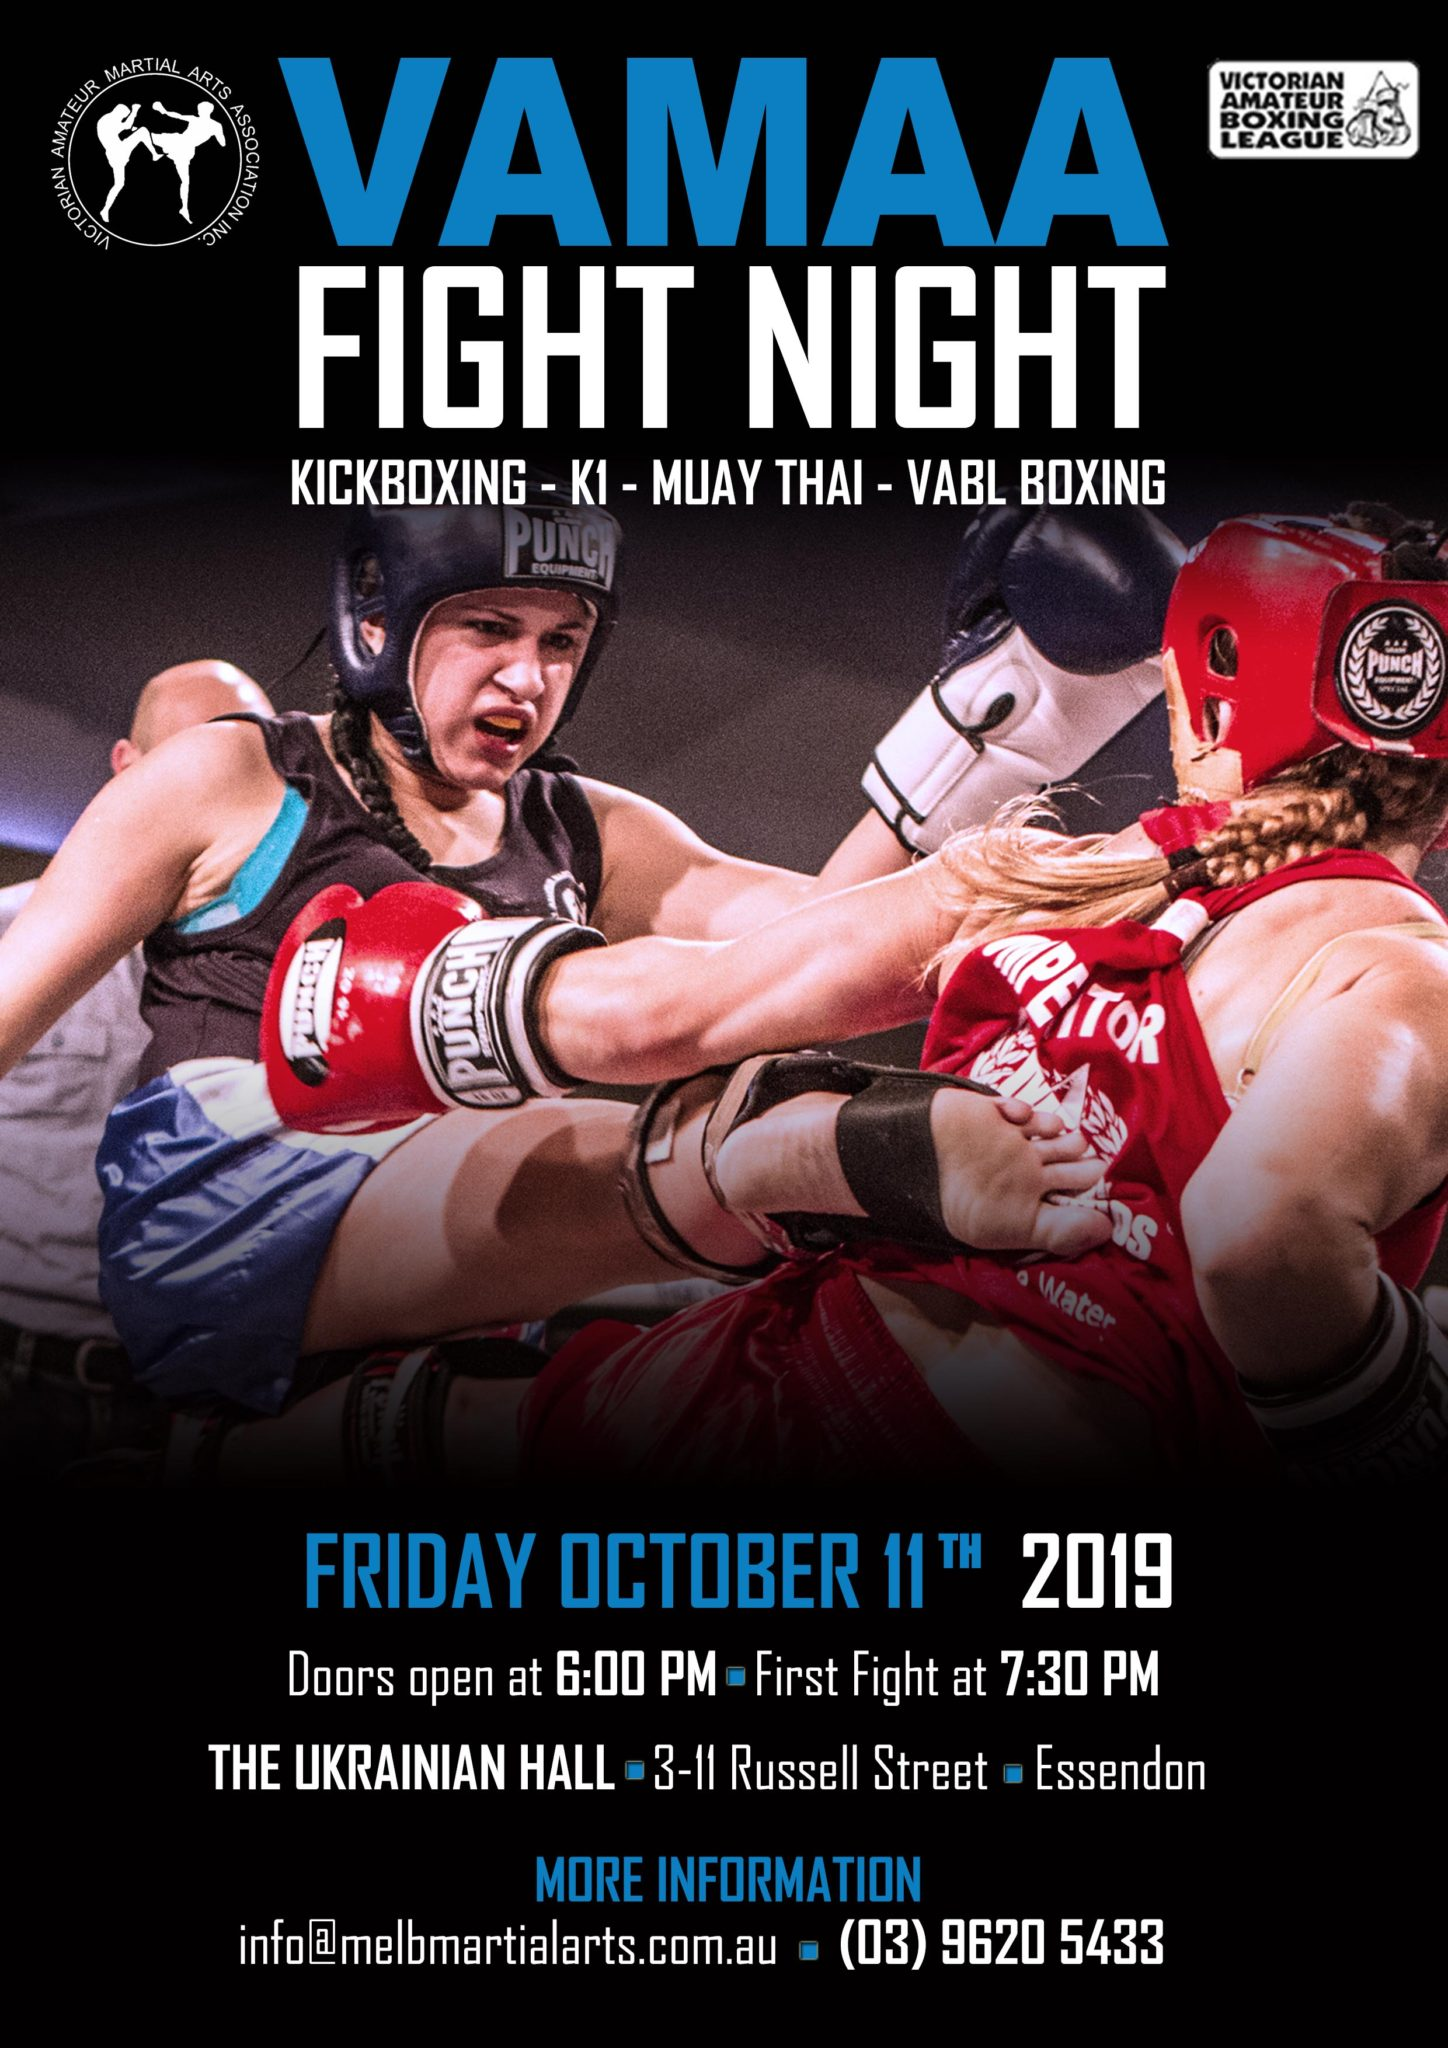 VAMAA Amateur Fight Nights | Melbourne Fight Club